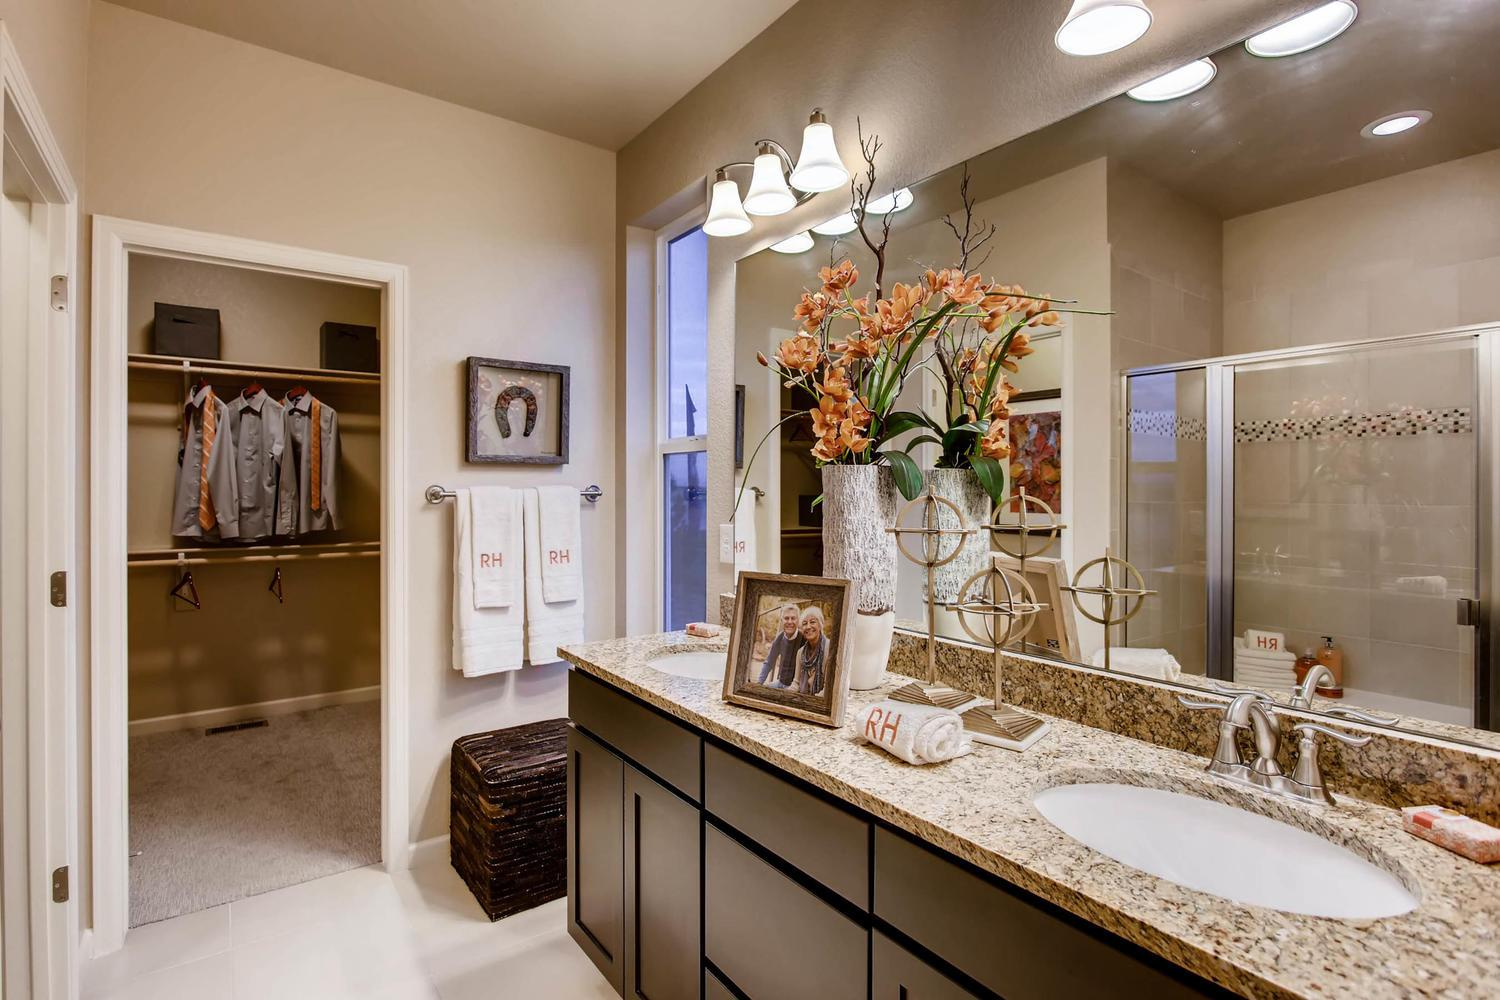 Bathroom featured in the Lakewood -The Highlands By RichfieldHomes in Greeley, CO